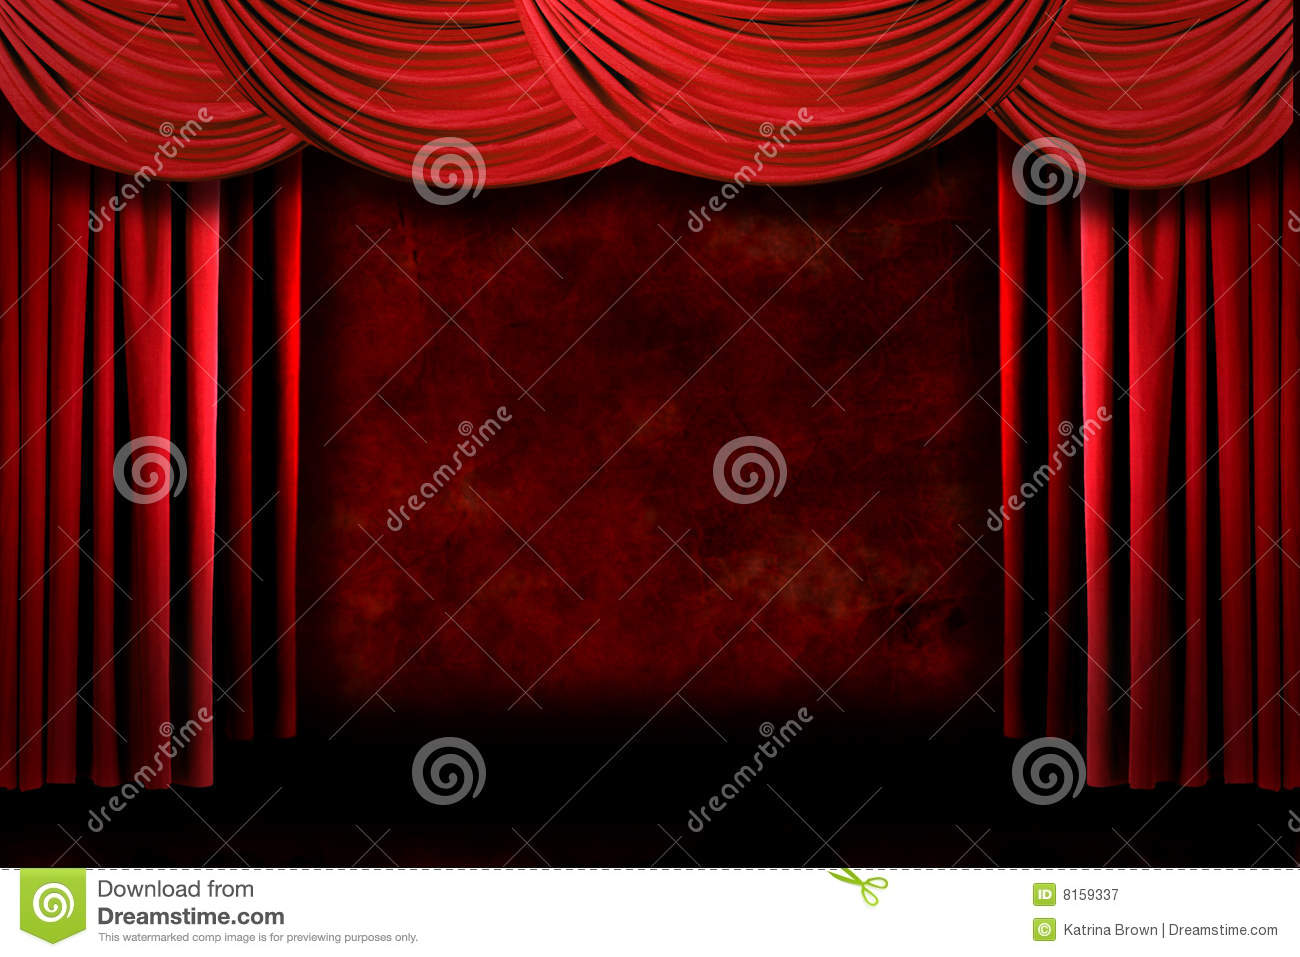 Stock photo dramatic red old fashioned elegant theater stage stock - Royalty Free Stock Photo Dramatic Drapes Stage Theater Culture Orchestra Announcement Arts Elegant